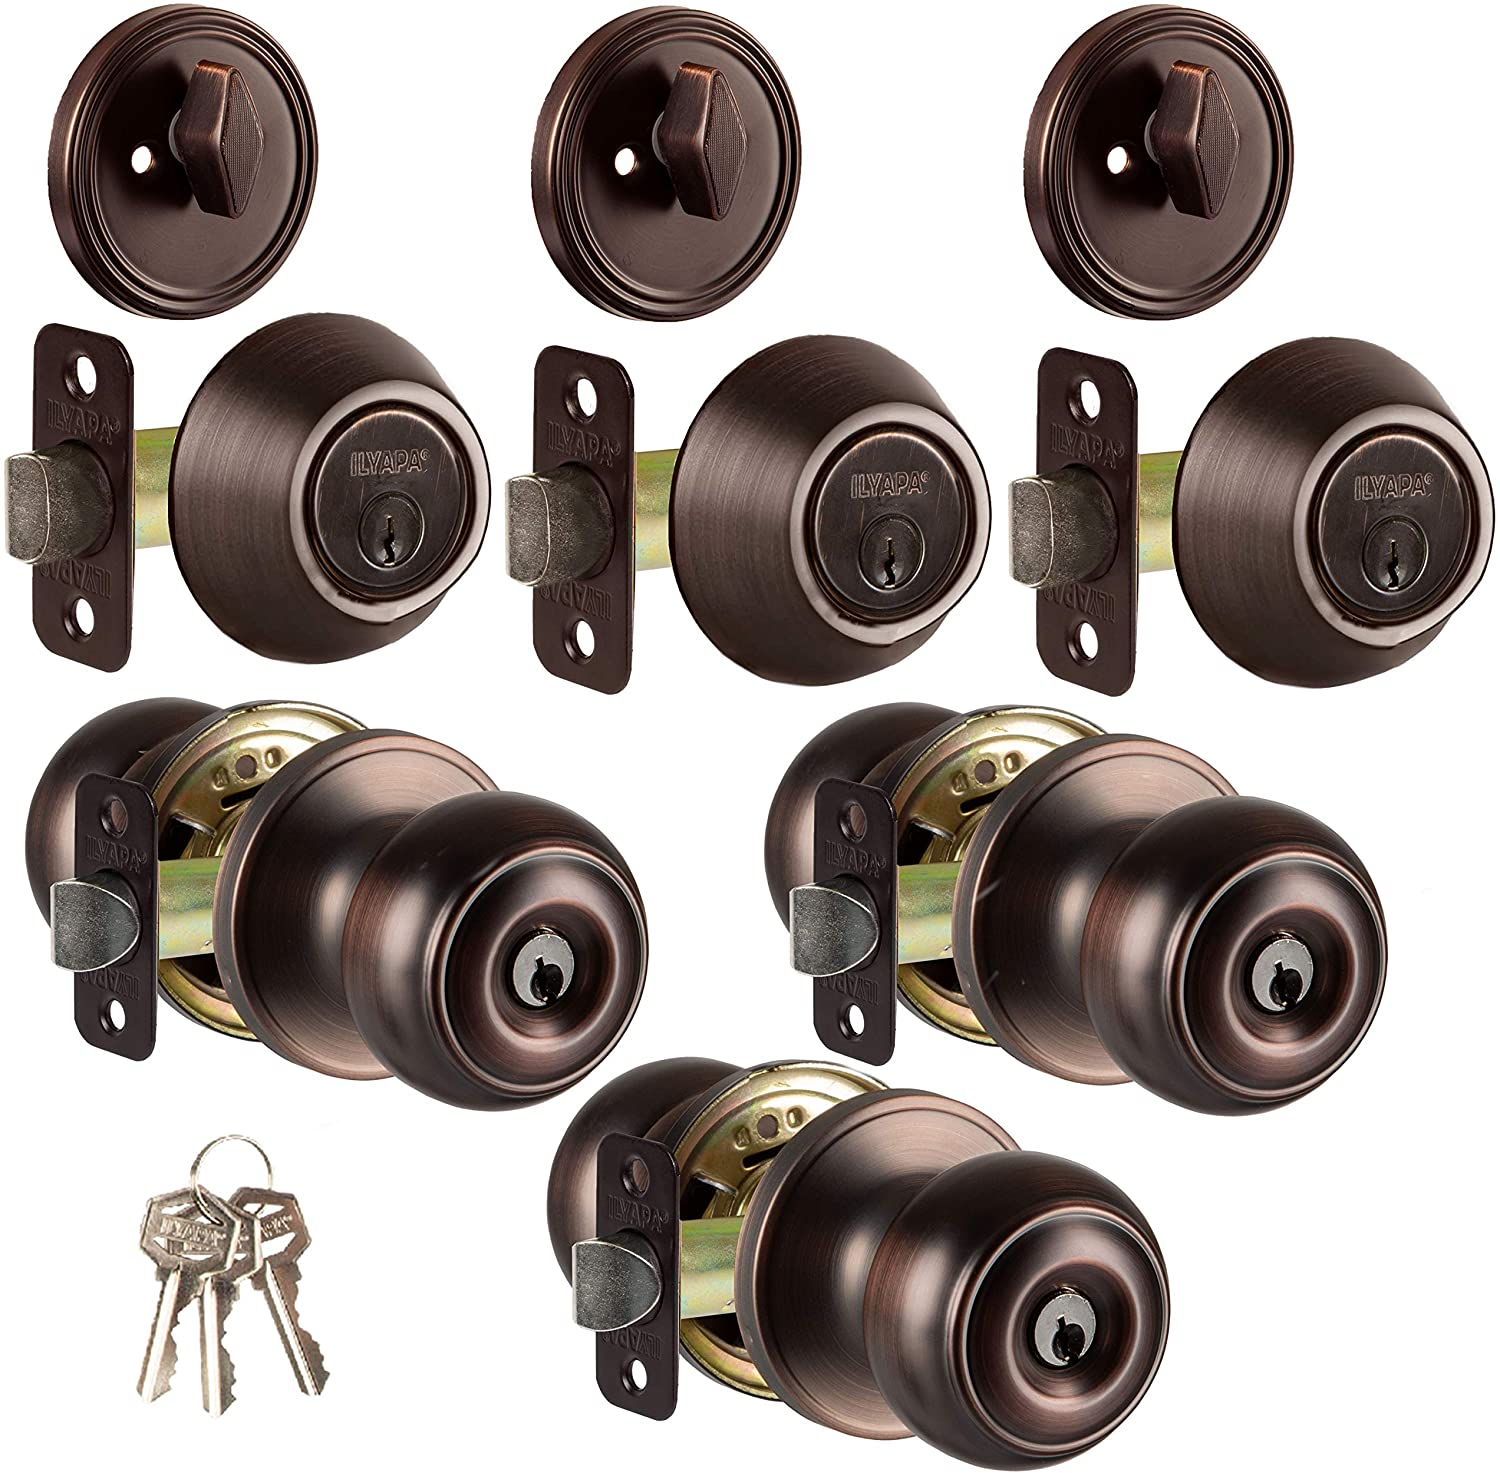 Entry Door Knob and Deadbolt Lock Set, 3 Pack - Oil Rubbed Bronze Interior Door Knobs for Front Entrance, Bedroom, Bathroom or Closet